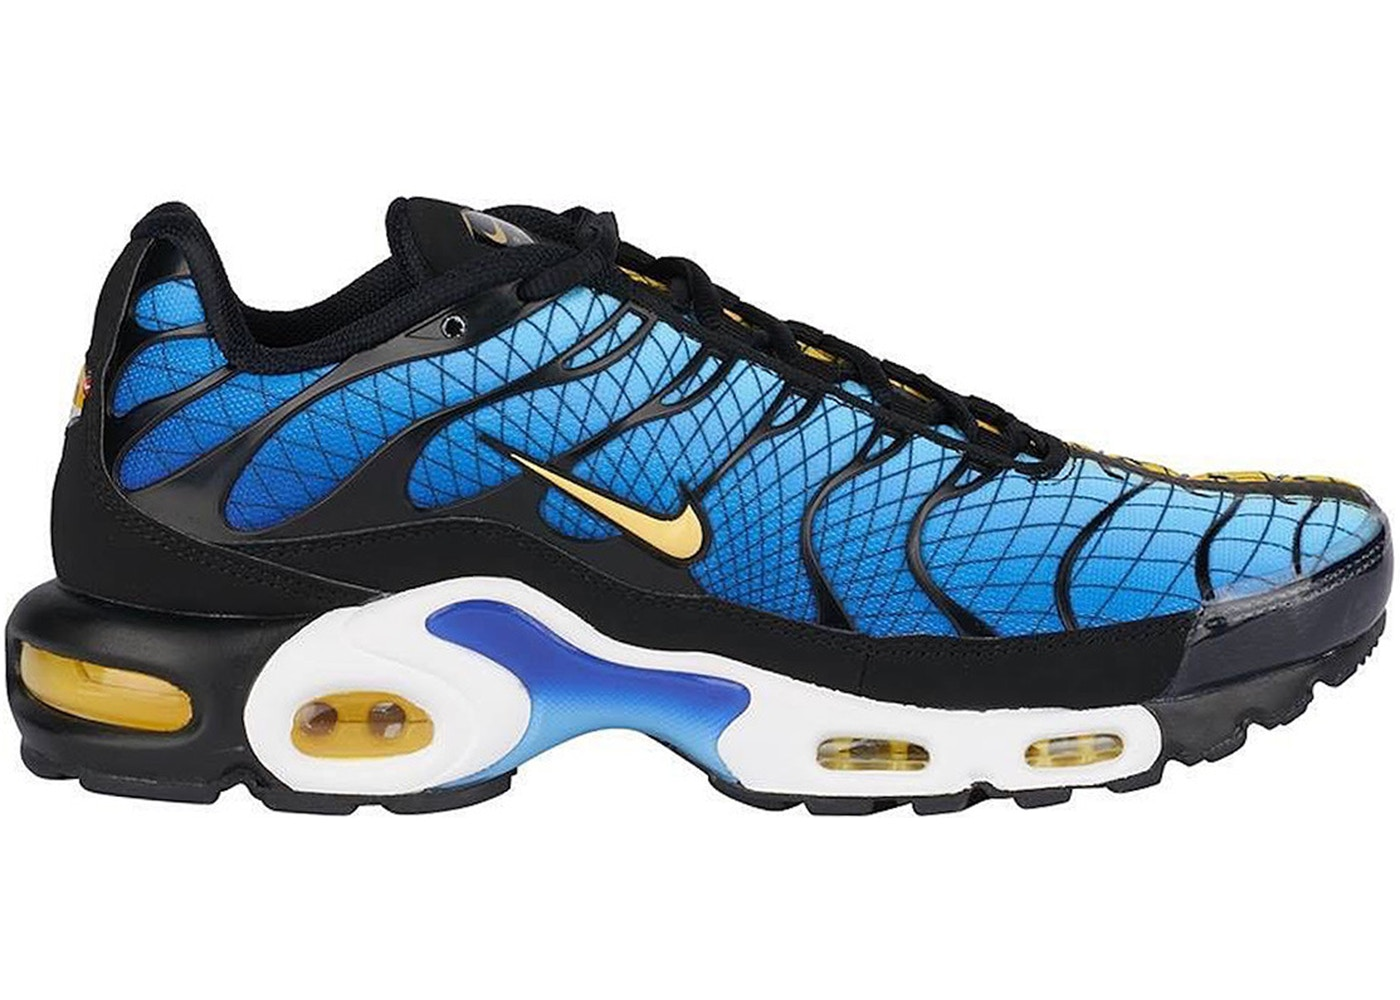 78eedf1271 Air Max Plus Greedy - AV7021-001